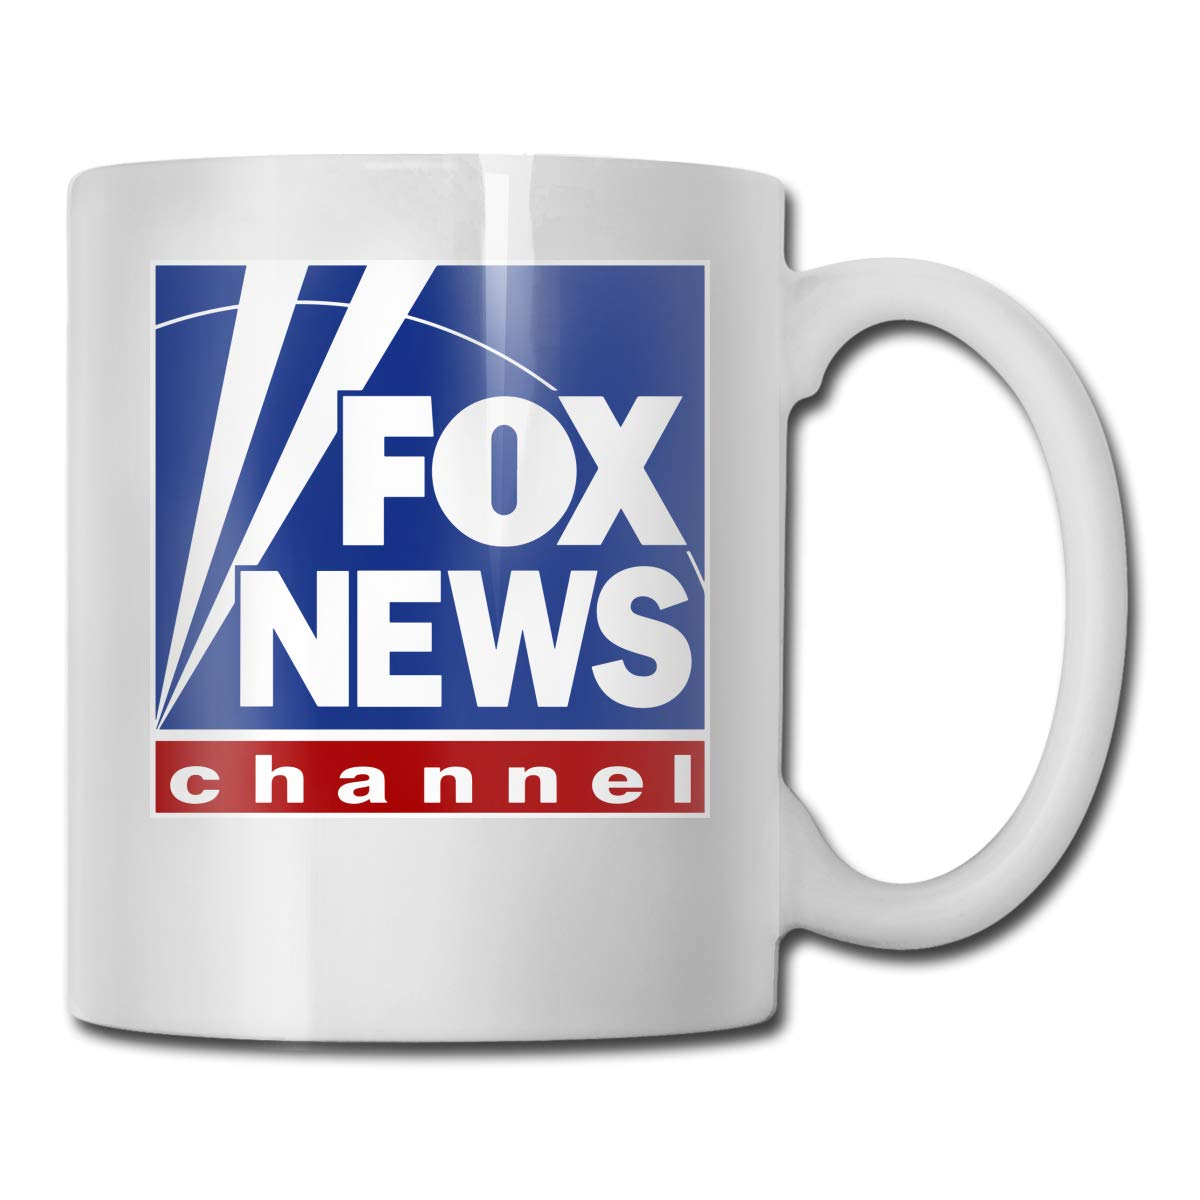 Amazon.com: Fox News Channel Logo Cool Coffee Mugs 11oz.